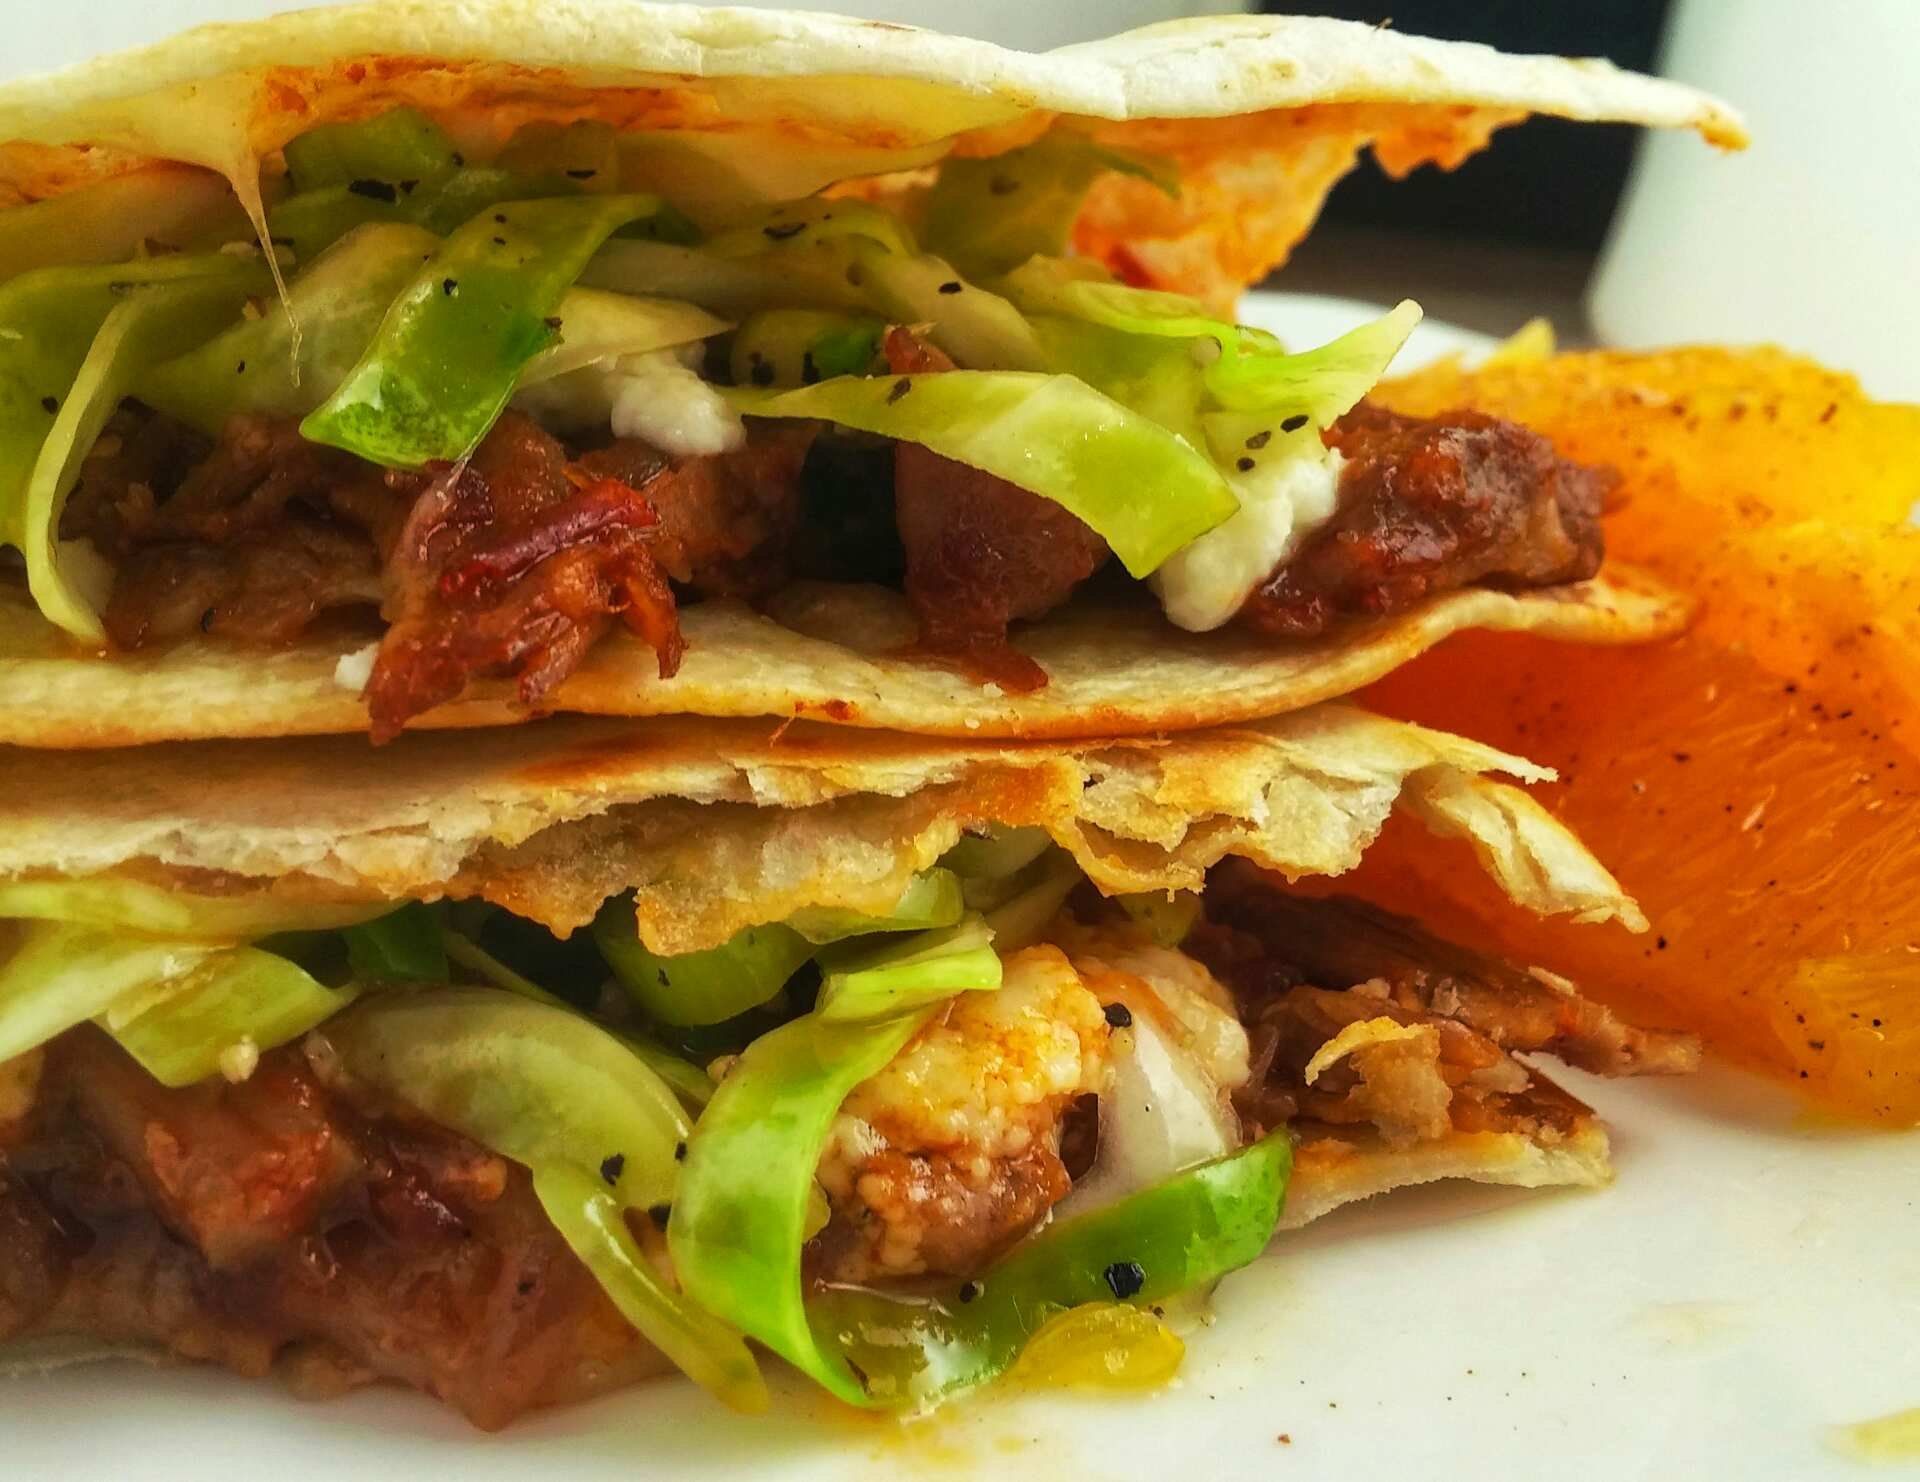 Image result for mexican food made with lard